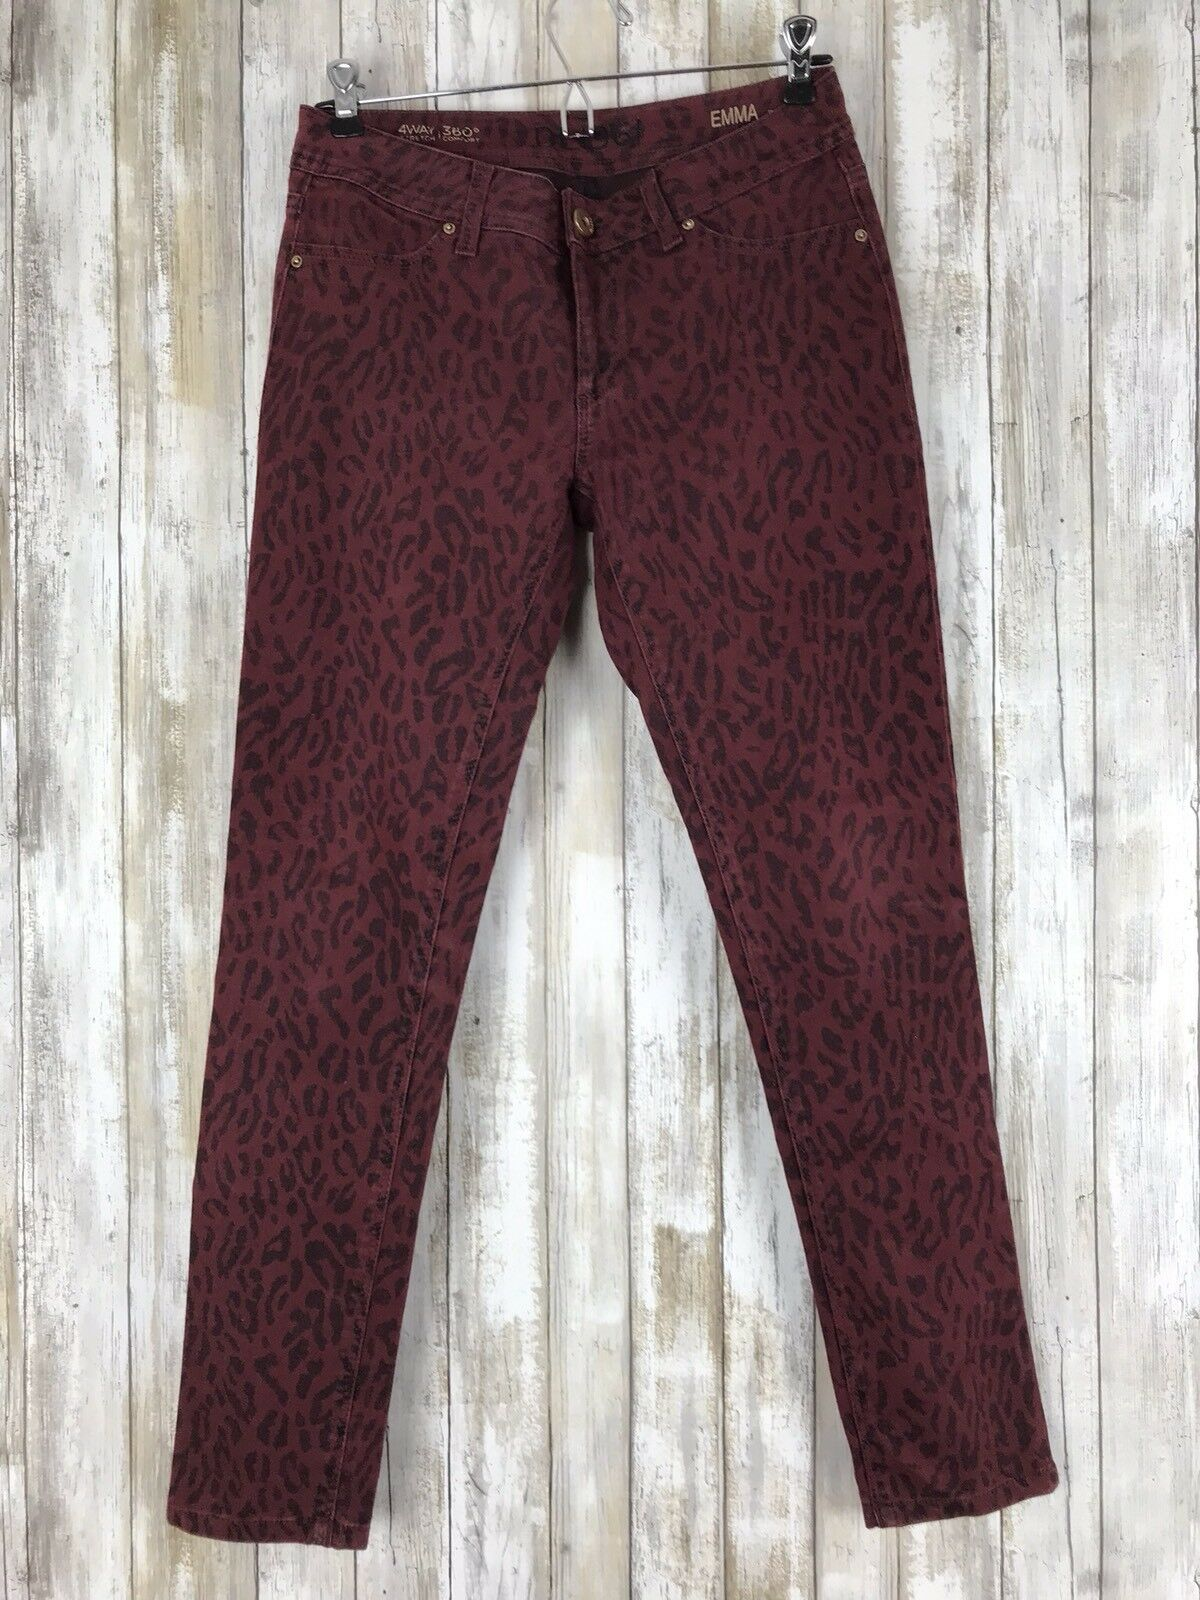 DL1961 EMMA Legging Skinny Legging Jeans MINX Leopard Red Wash 27